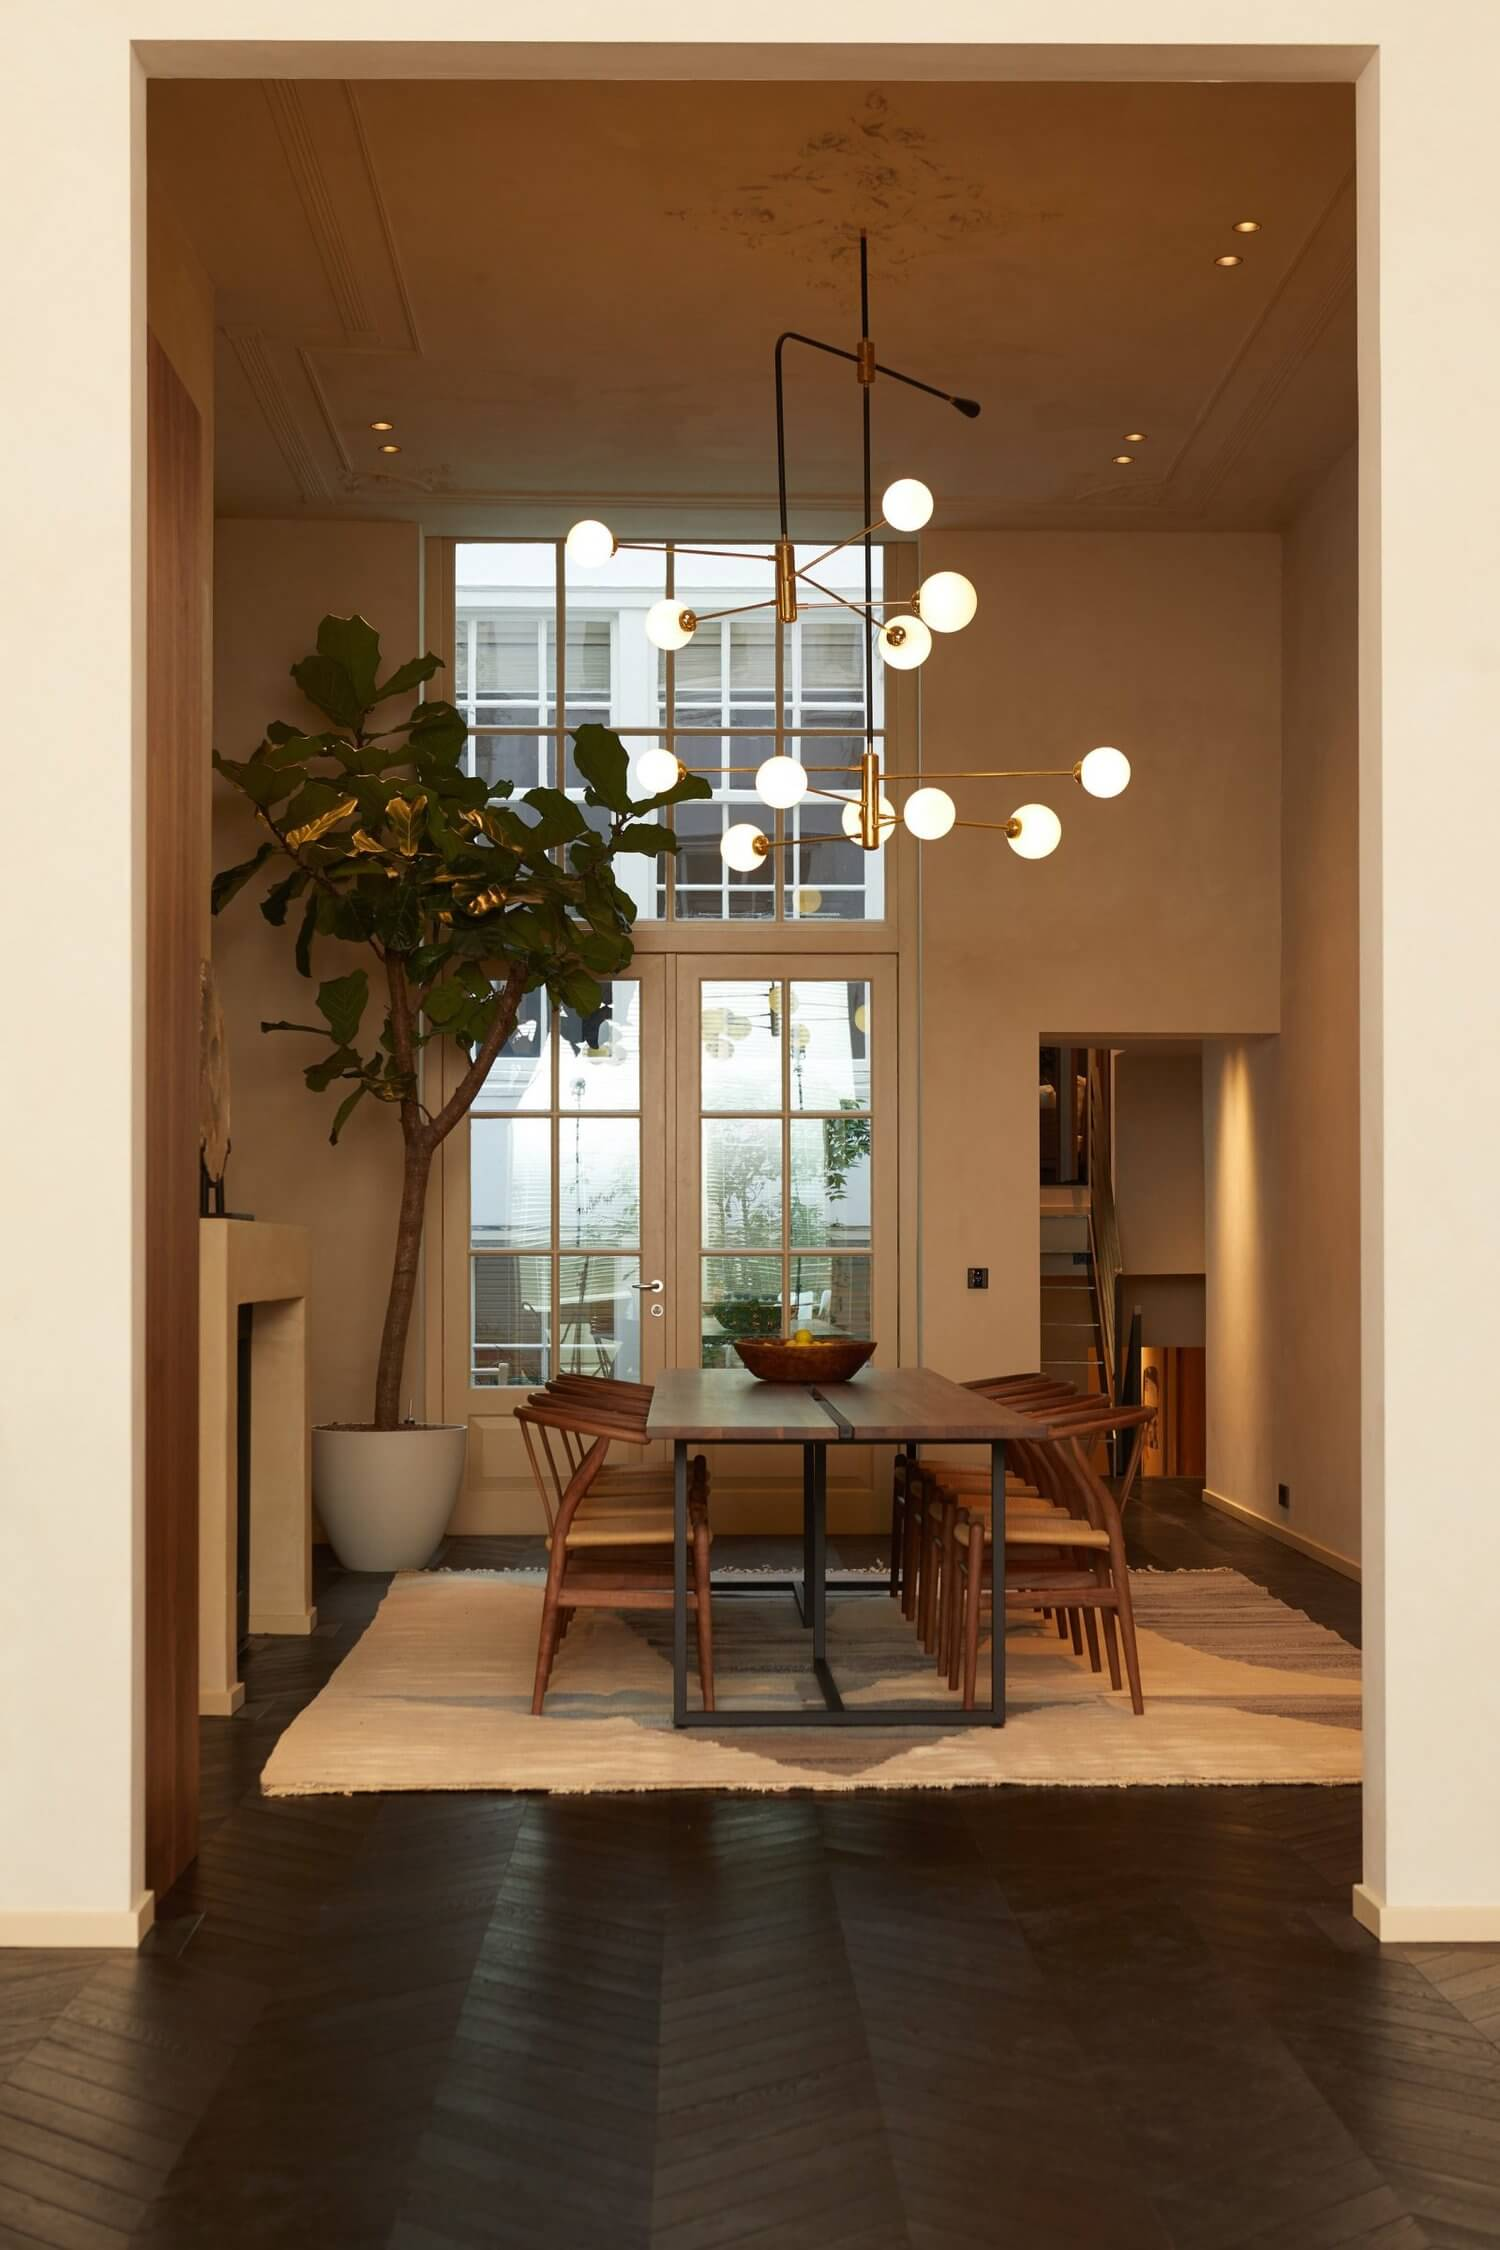 An Amsterdam Canal House Transformed Into 3 Calm & Stylish Apartments